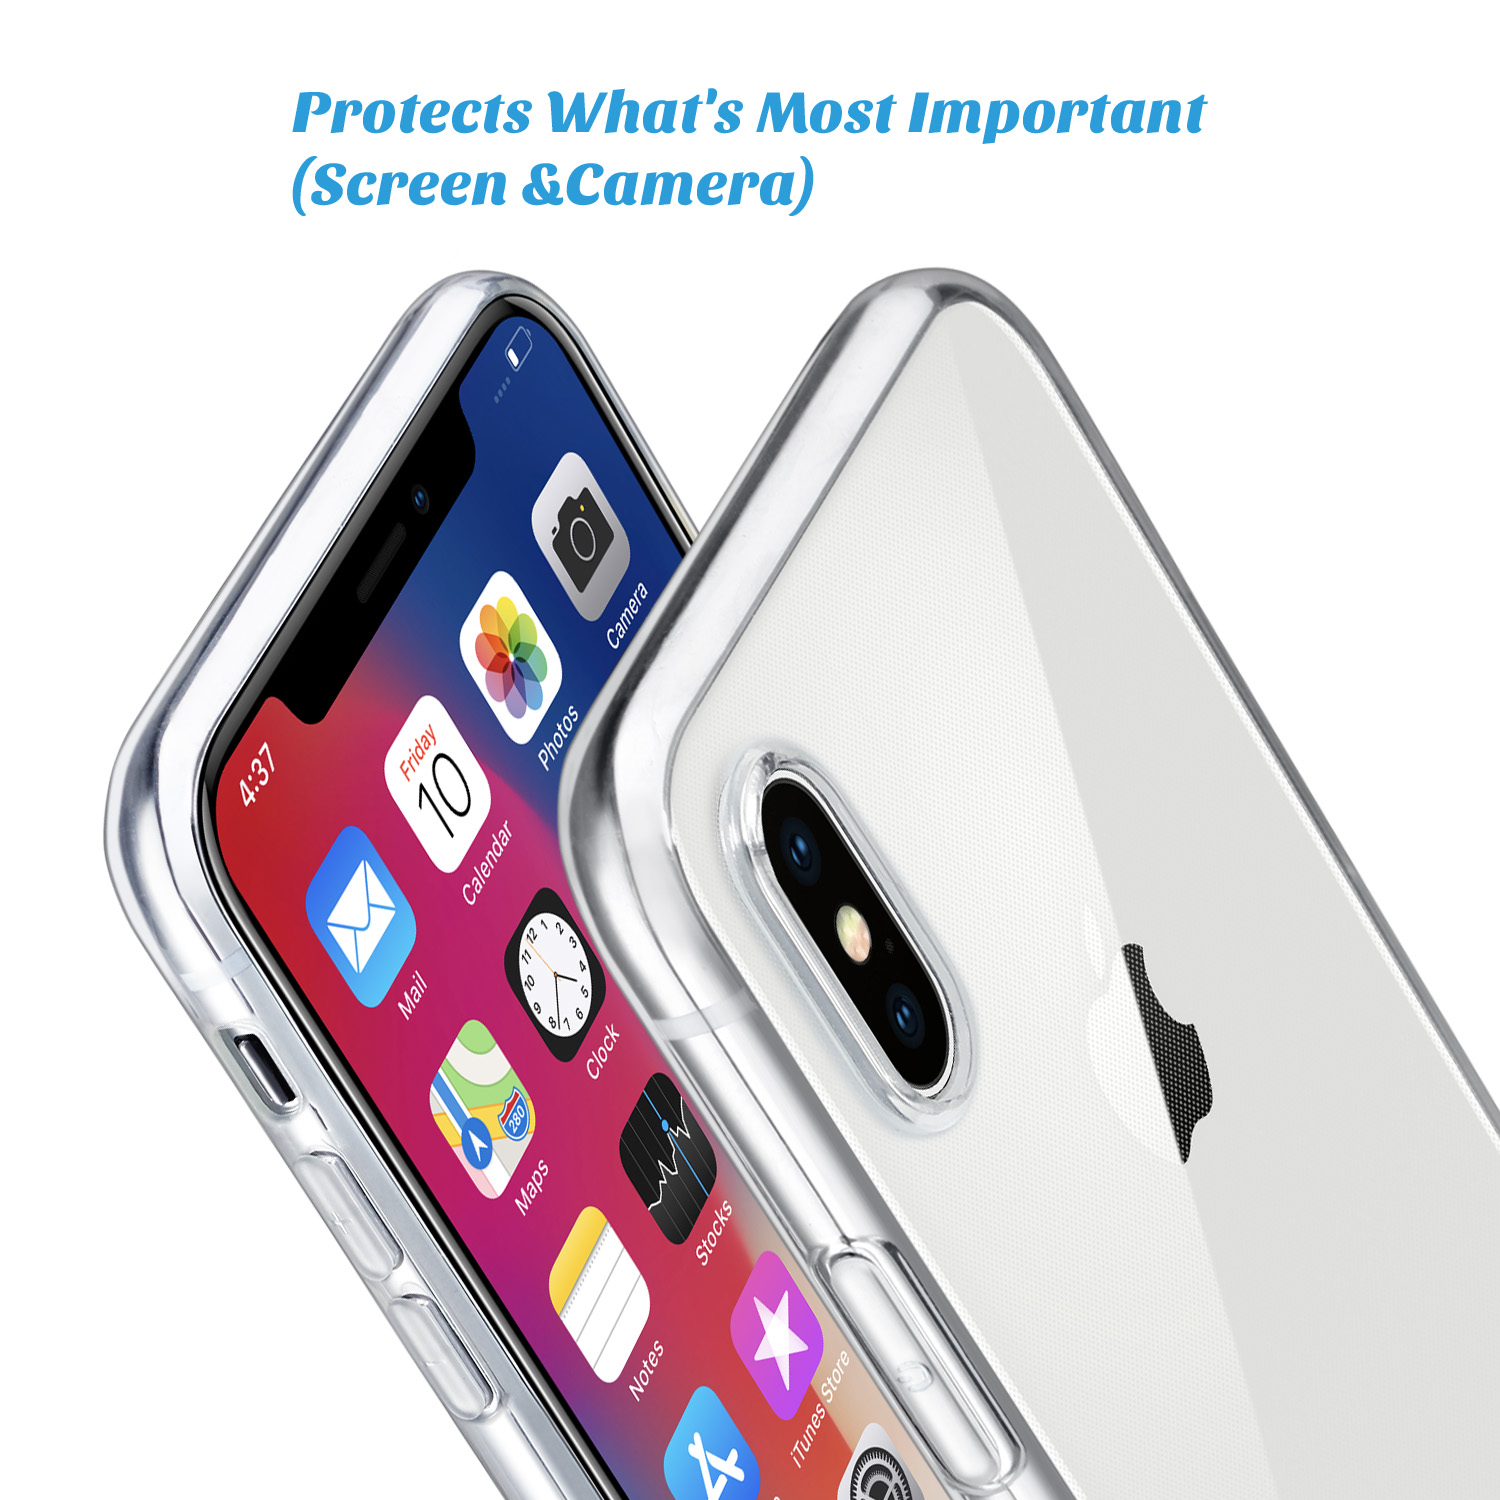 "H2e7a07ec385d41d988f4c1ac906ea7e5G - For iPhone X Case, WEFOR Slim Clear Soft TPU Cover Support Wireless Charging for Apple 5.8"" iPhone X /iPhone 10"